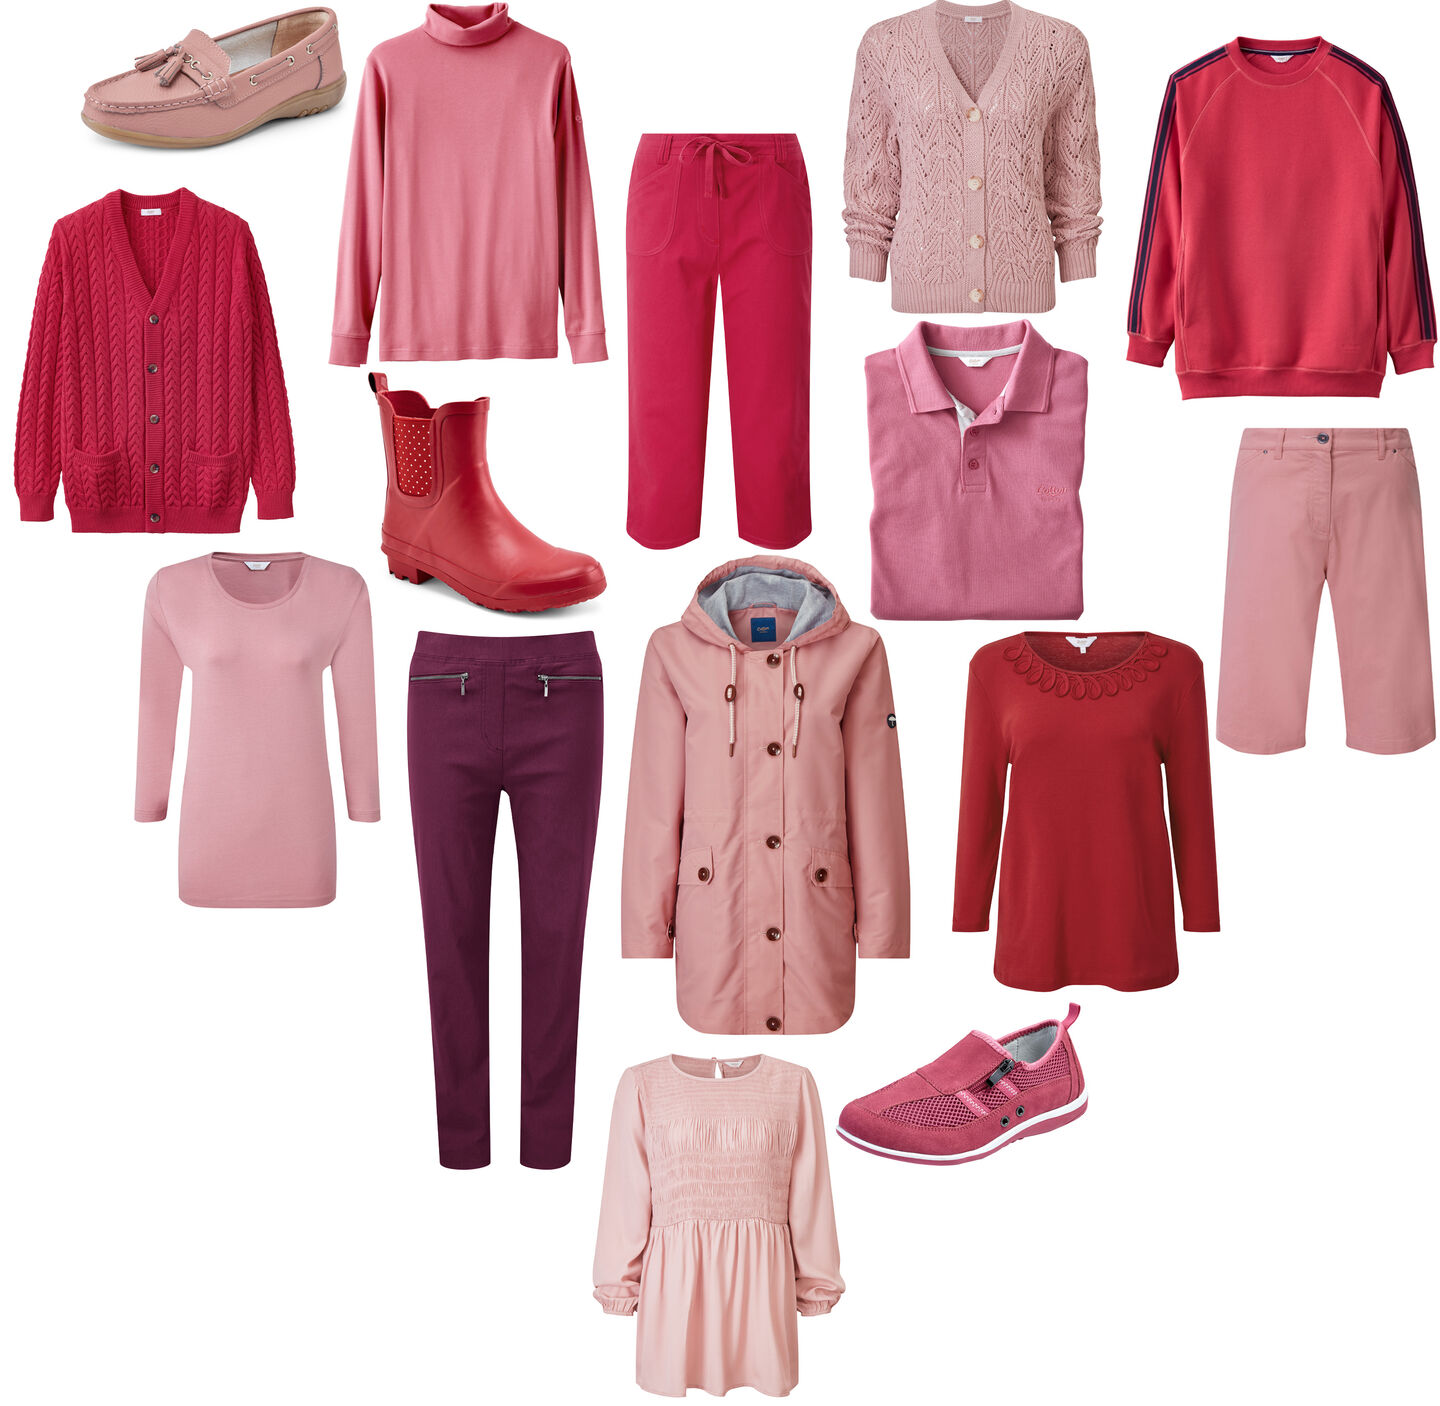 Pink & Red Women's Clothing